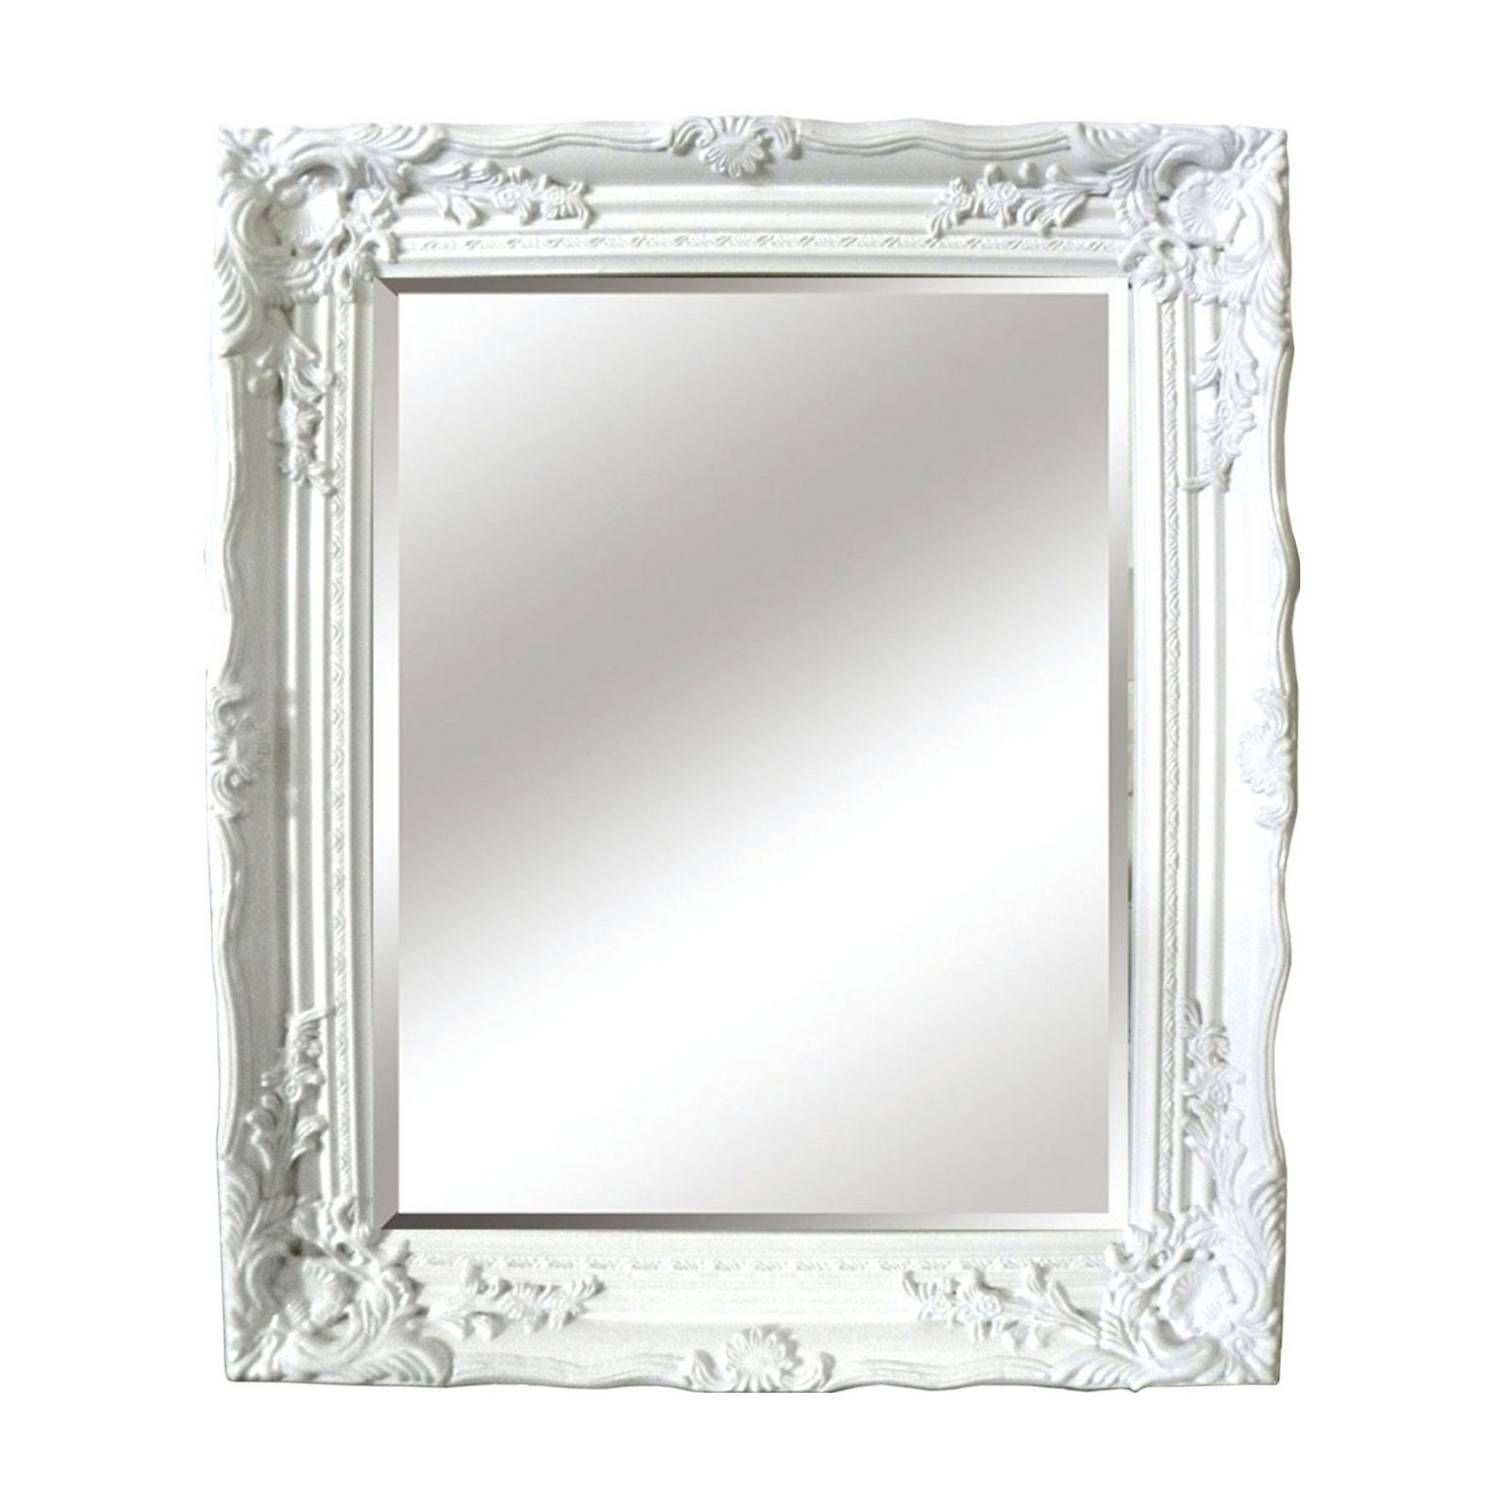 Buy Antique White Ornate Mirror Mirrors The Range